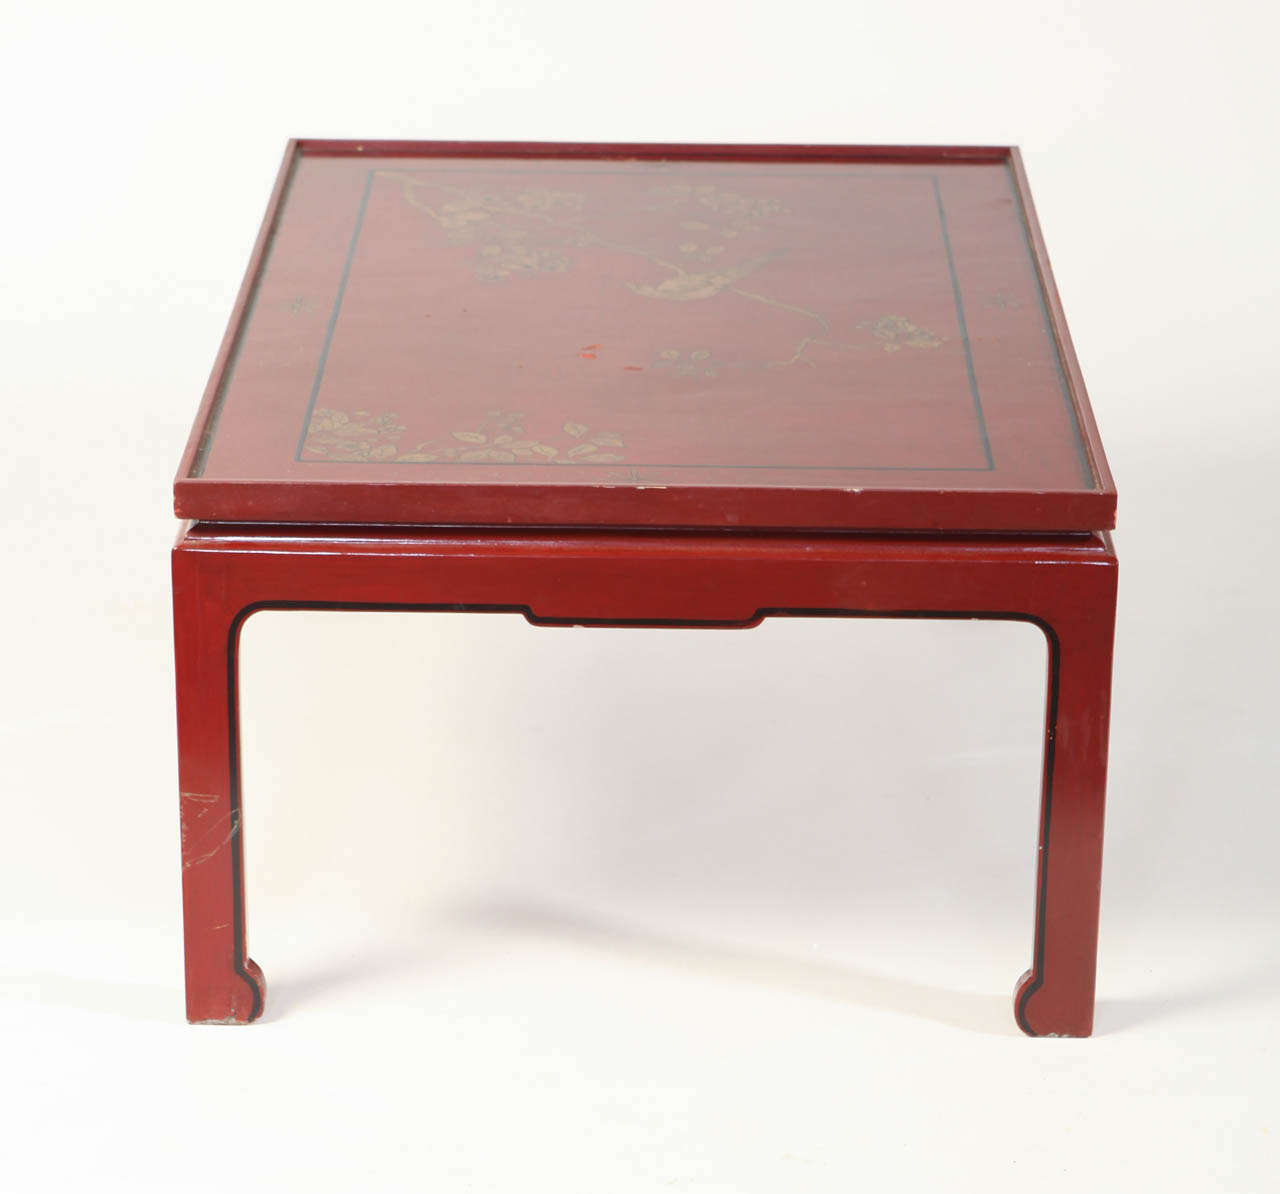 Square Red Lacquered Coffee Table At 1stdibs